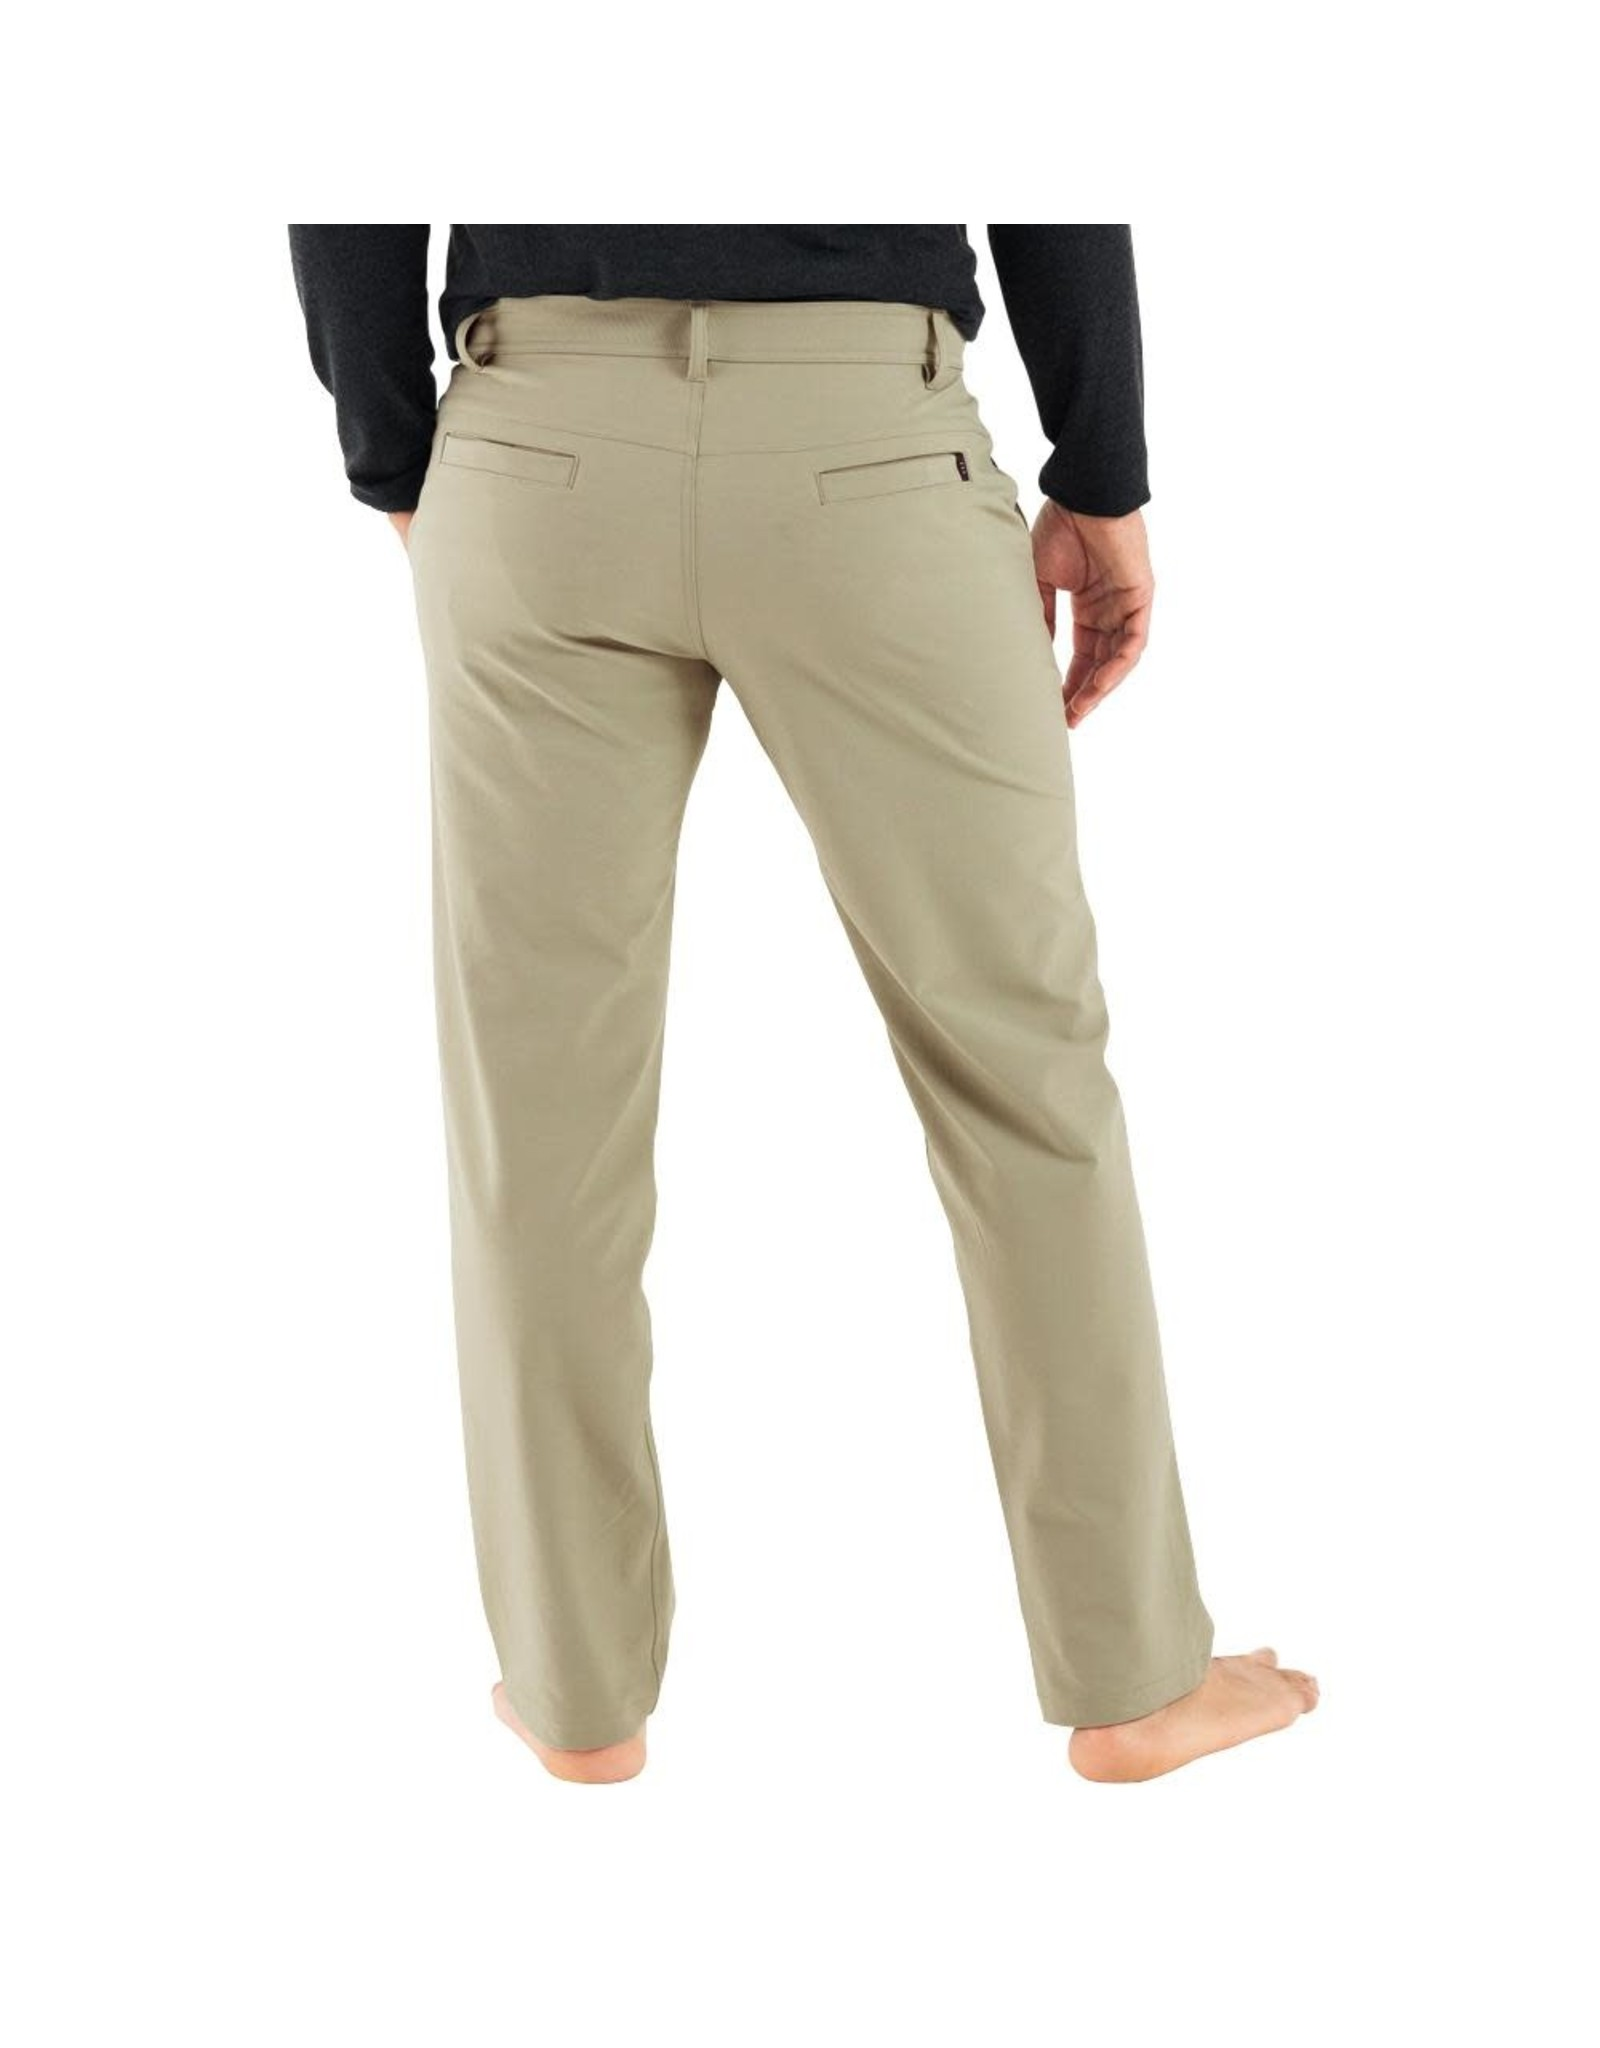 Free Fly Apparel M's Nomad Pants